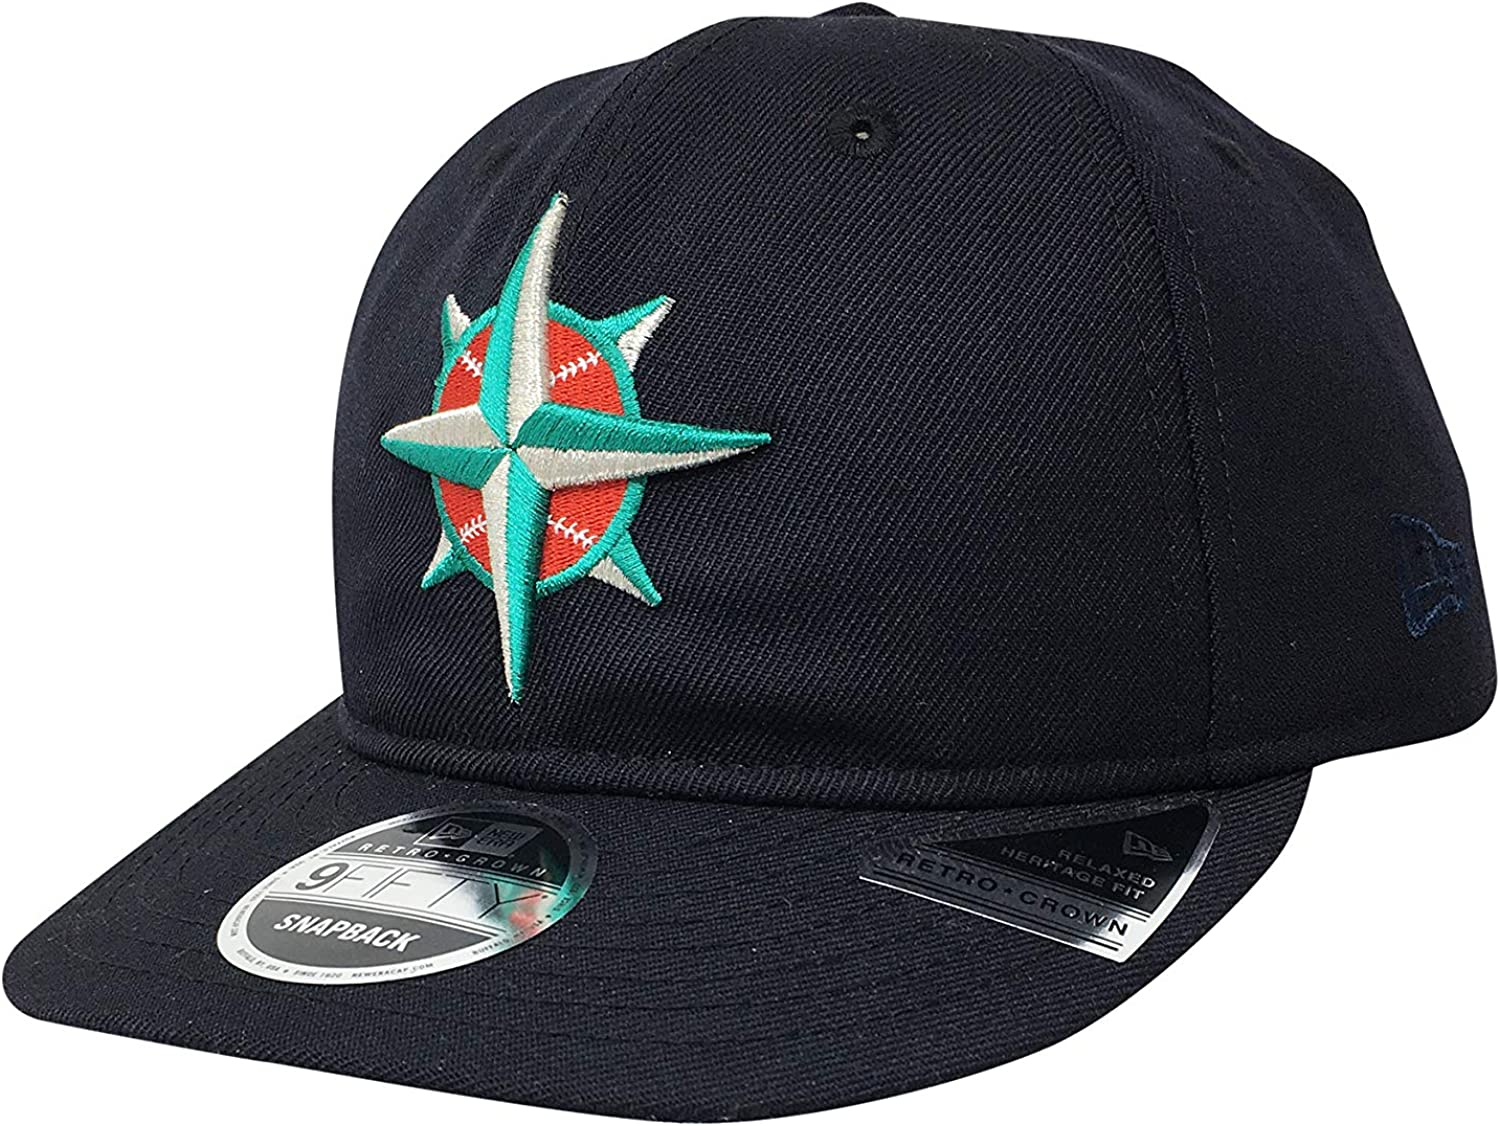 New Era Seattle Mariners Adjustable 9Fifty MLB Flat Bill Baseball Cap 950